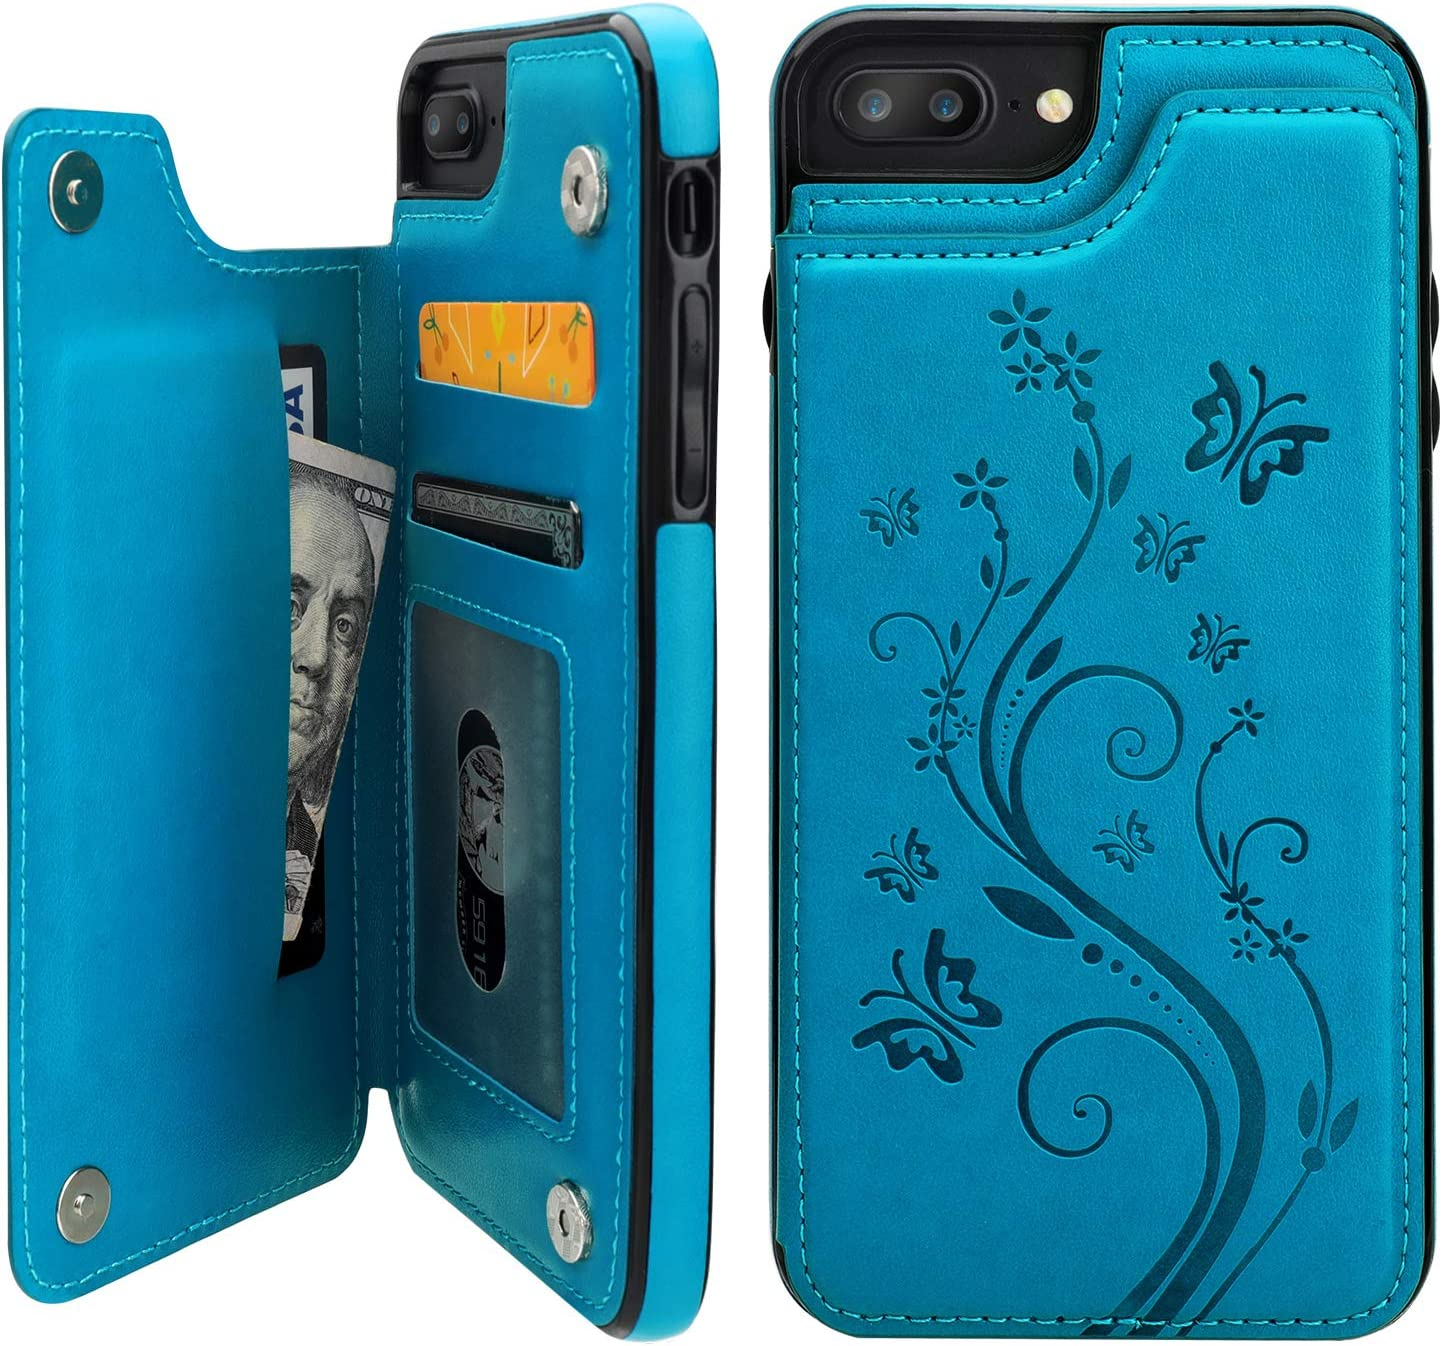 Vaburs iPhone 7 Plus iPhone 8 Plus Case Wallet with Card Holder, Embossed Butterfly Premium PU Leather Double Magnetic Buttons Flip Shockproof Protective Cover for iPhone 7/8 Plus Case(Blue)